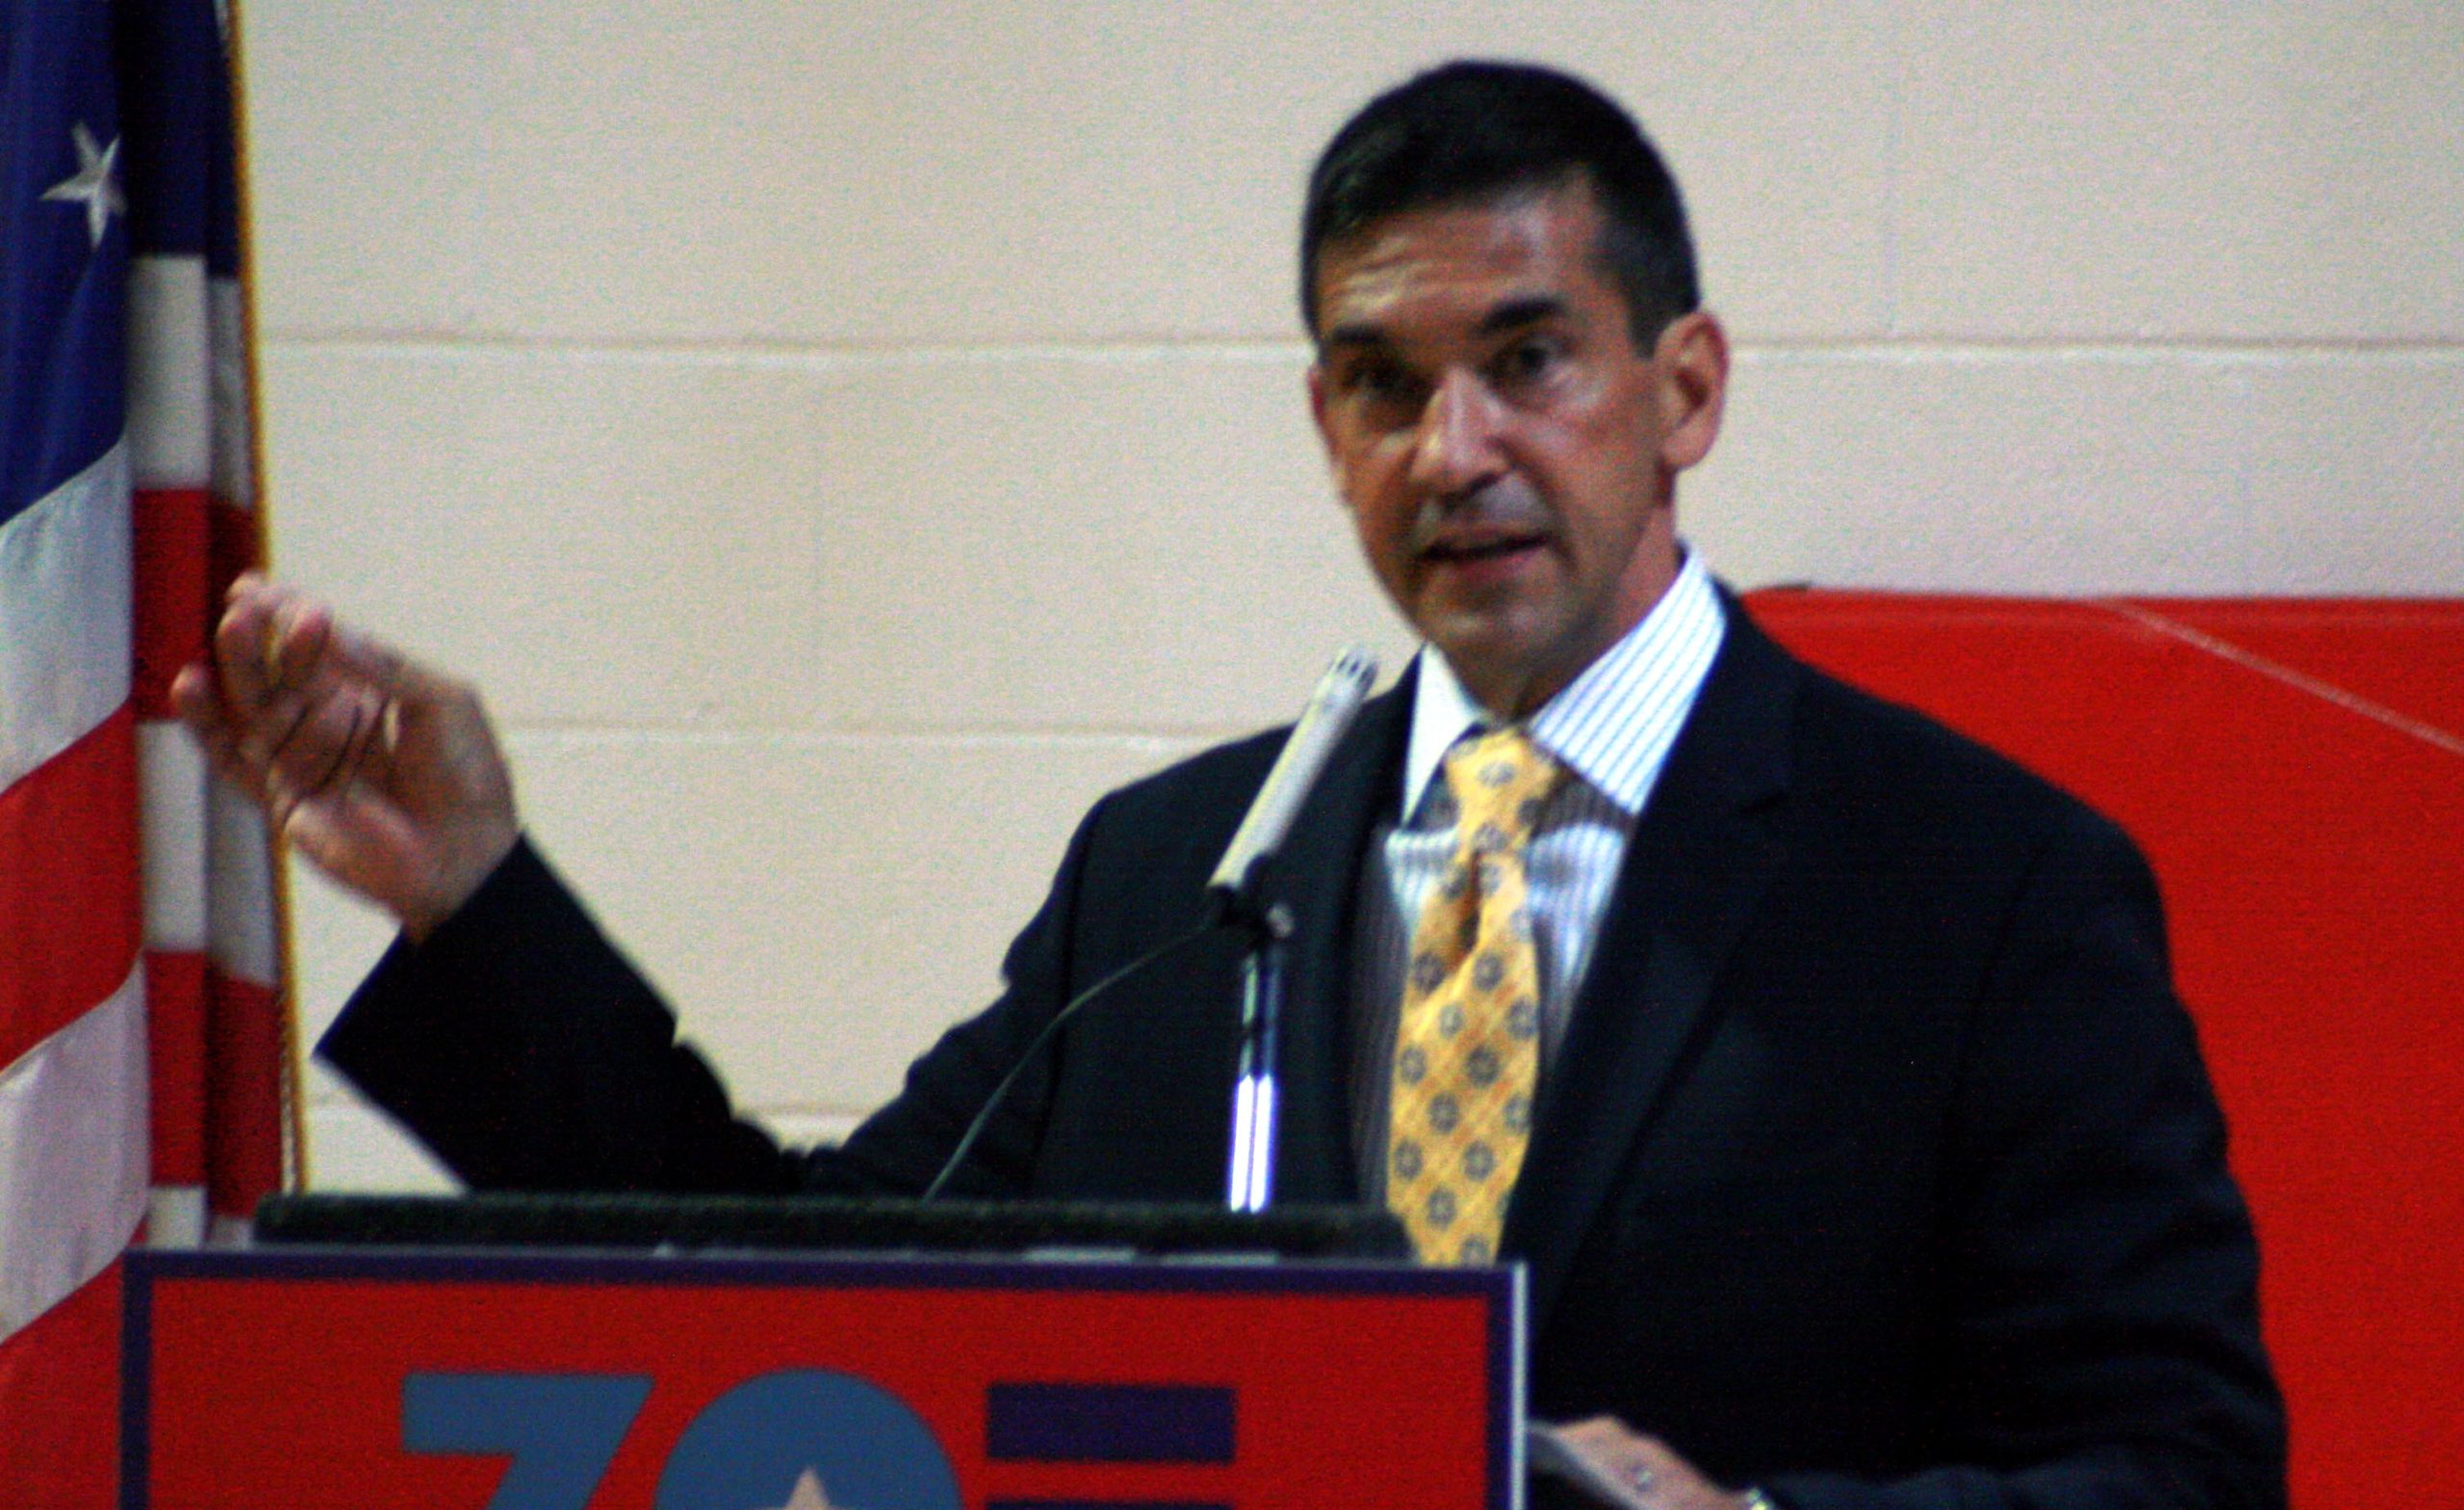 Chester County's Val DiGiorgio Announces Candidacy for State GOP Chairman